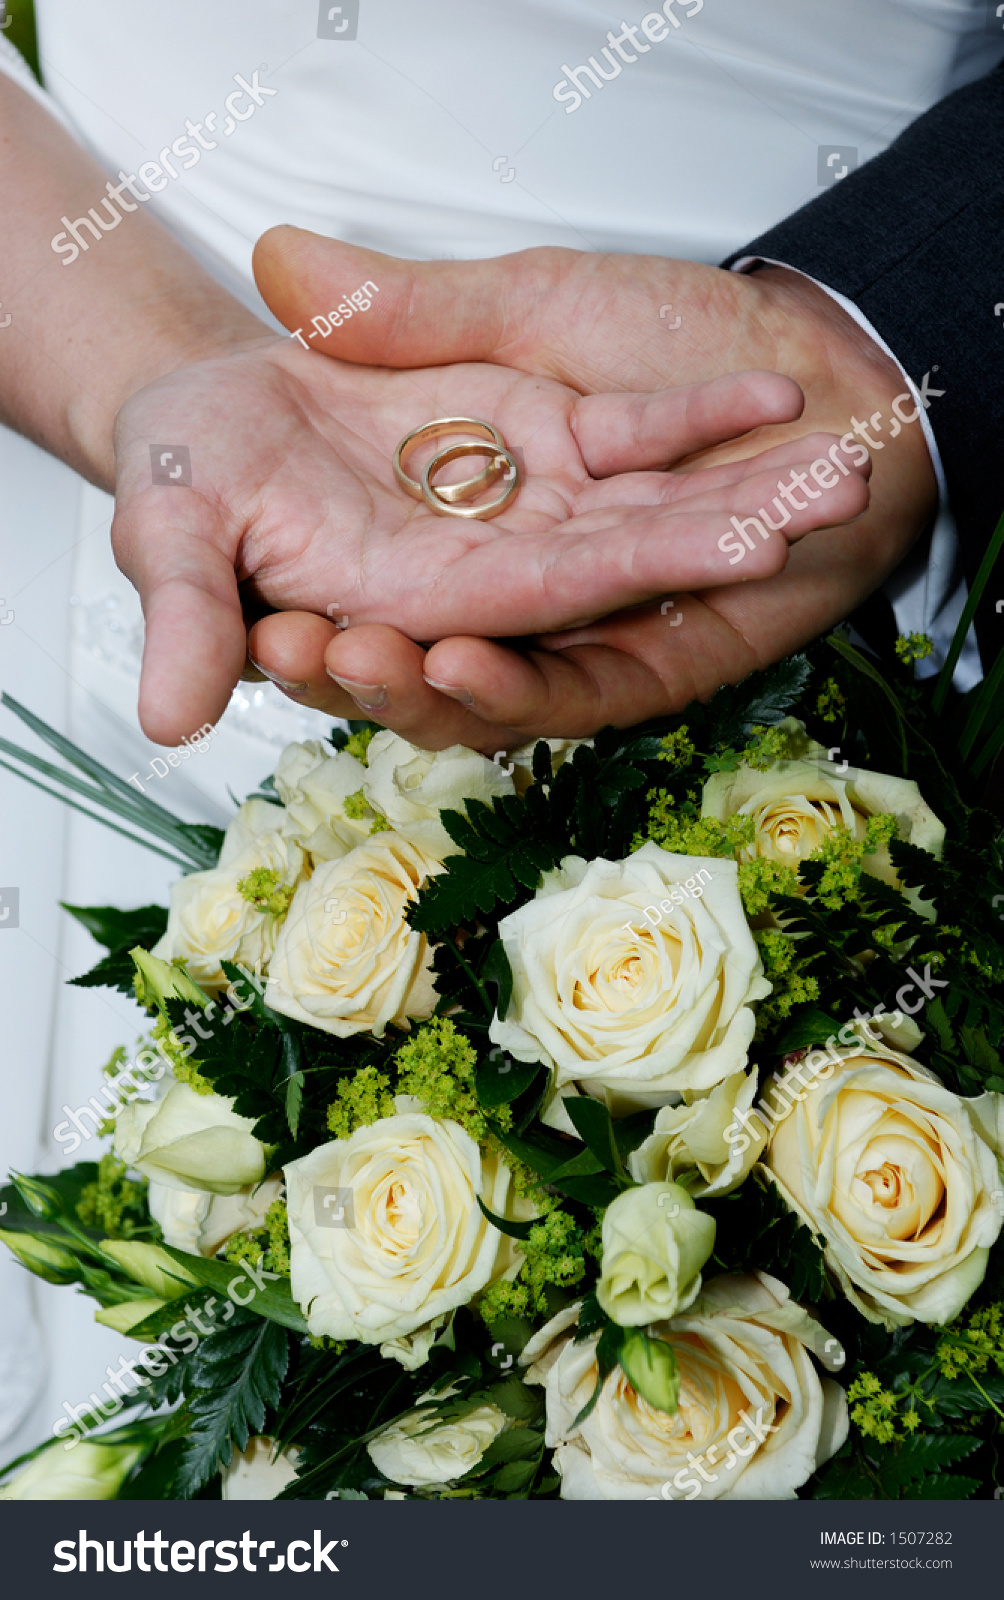 wedding two hands with ring stock photo 1507282